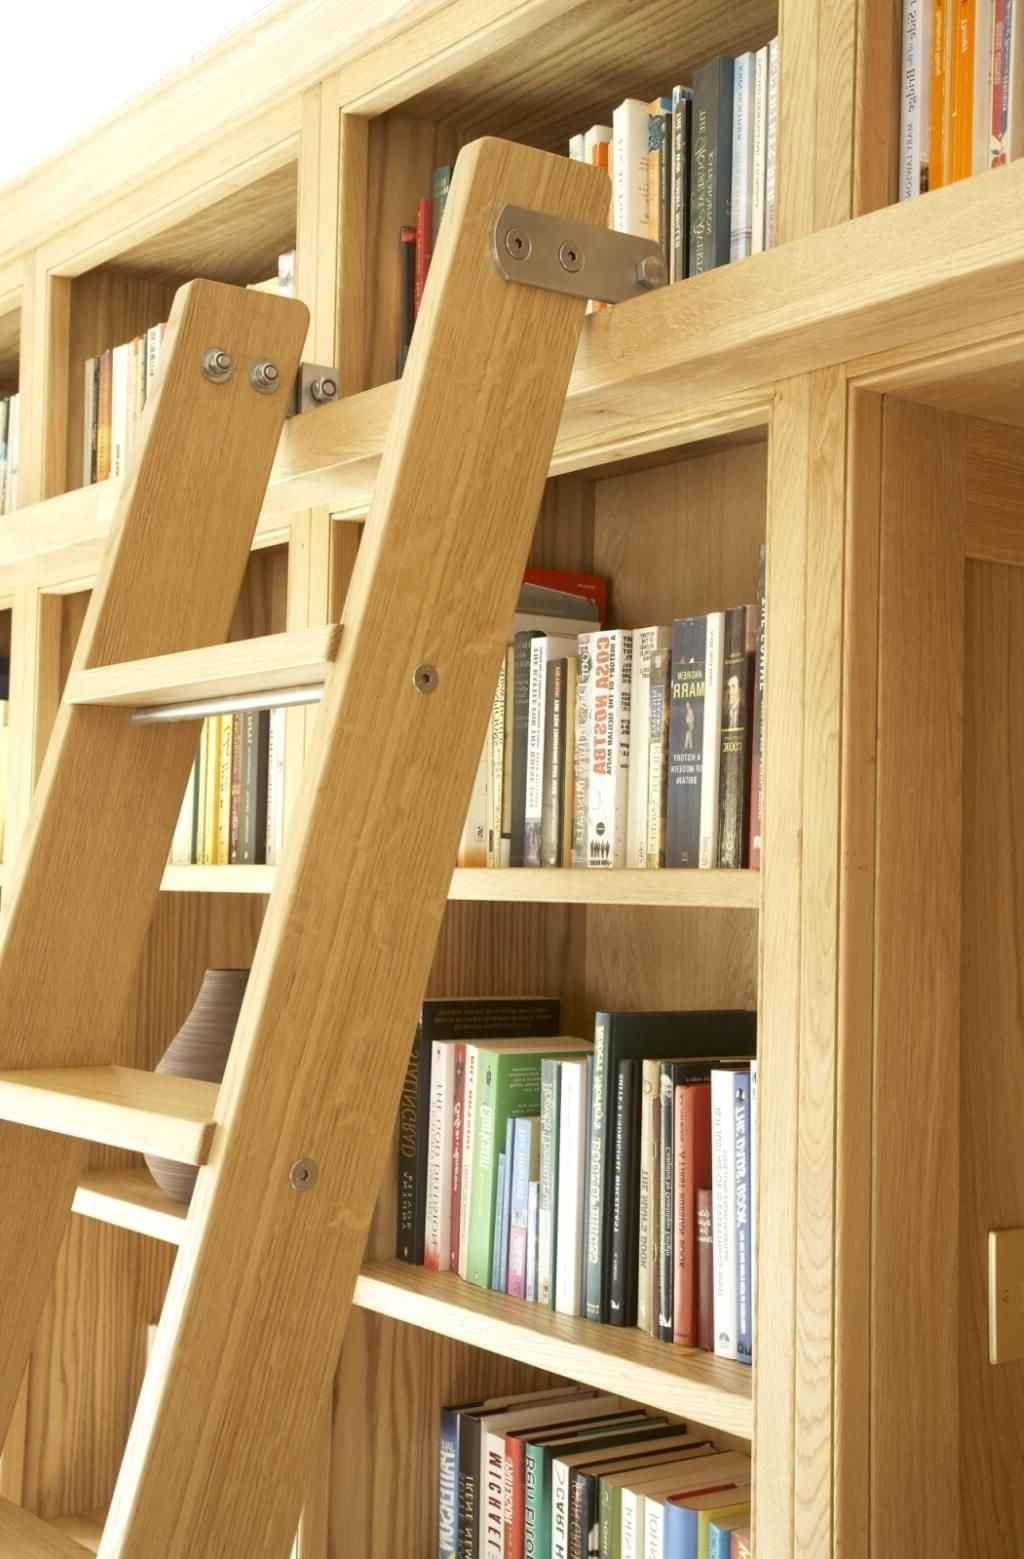 Sliding Library Ladder In Preferred Furniture: Awesome Unfinished Wood Library Bookcase And Ladder (View 12 of 15)